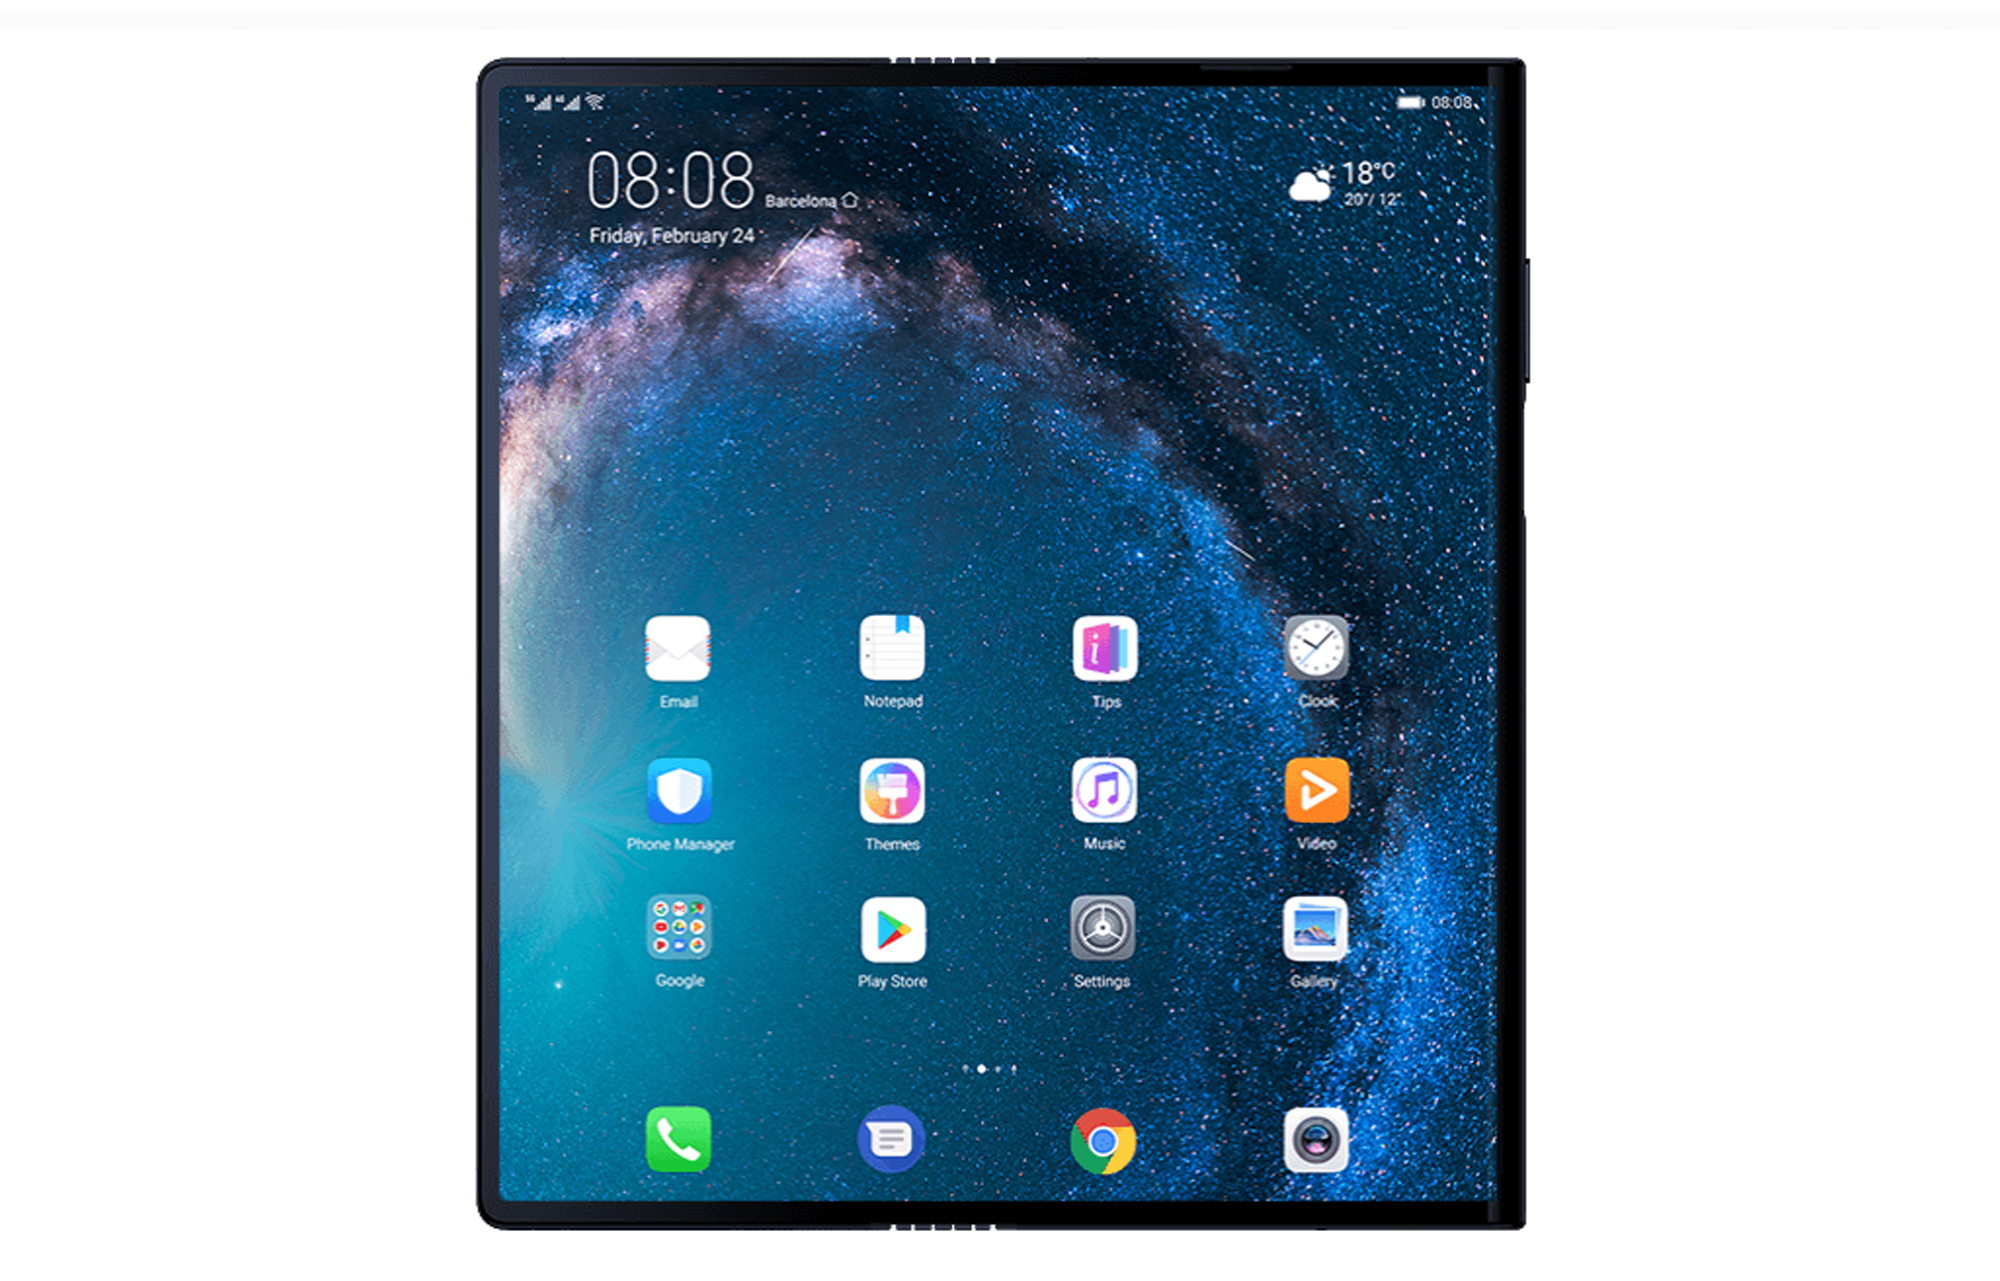 The fully-unfolded Mate X screen is 8 inches diagonally.